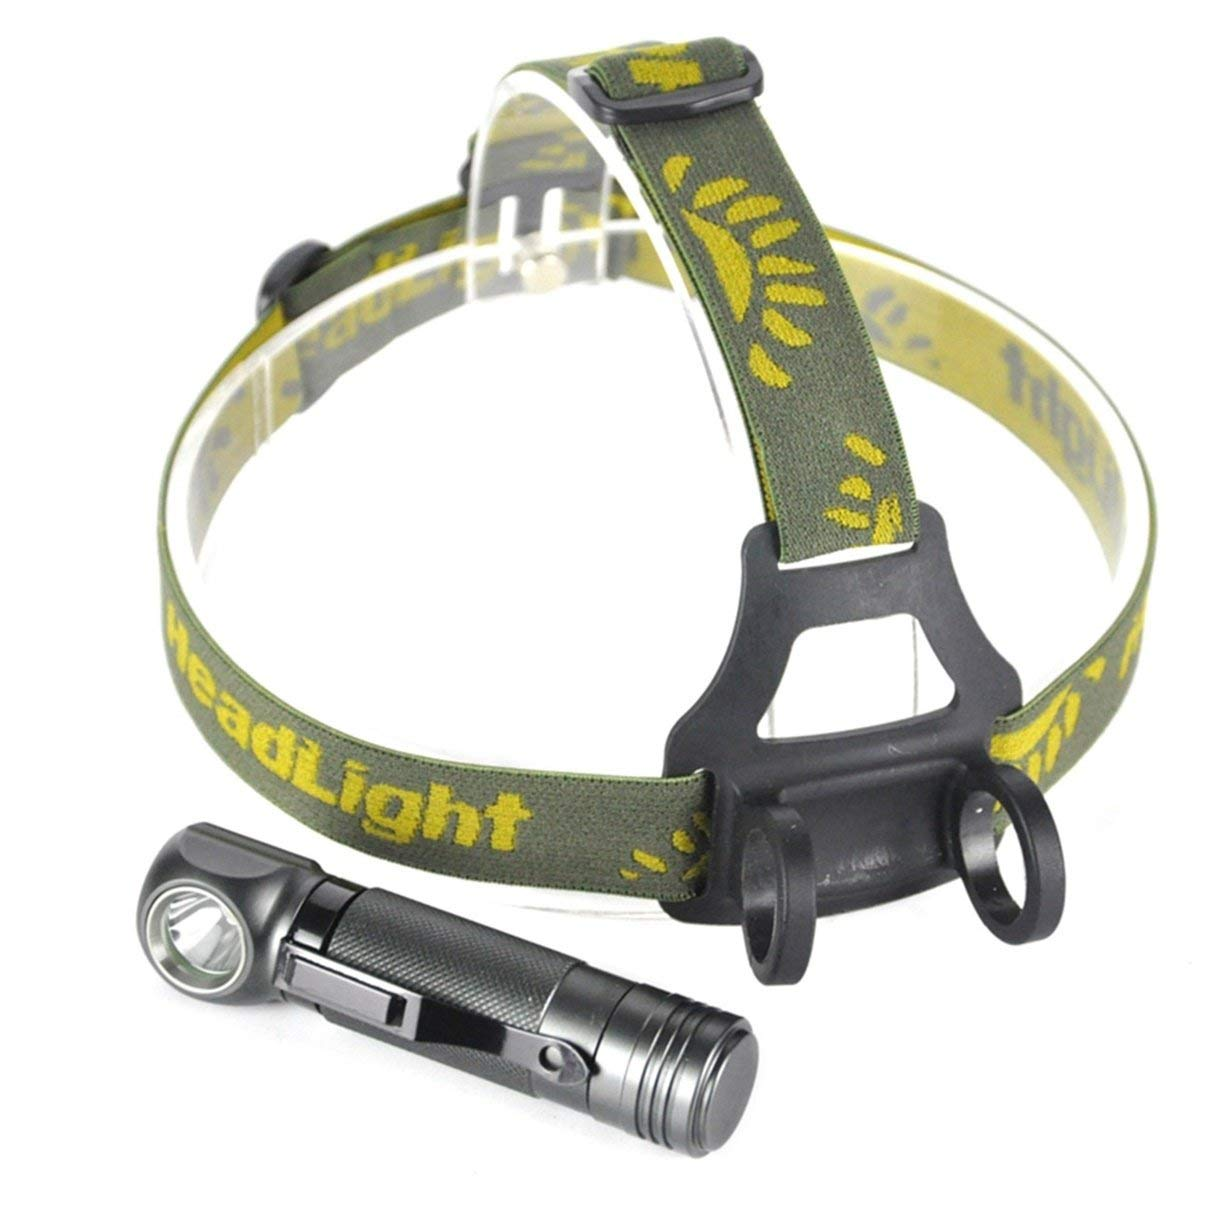 1 Pack 1000 Lumens XPL V5 LED Headlamp 3 Mode Head Lamp 5W Flashlight Headlight Likely Fashionable Ultra Xtreme Tactical Bright Light Waterproof Outdoor Running Hiking Hunting Fishing Camping Lights